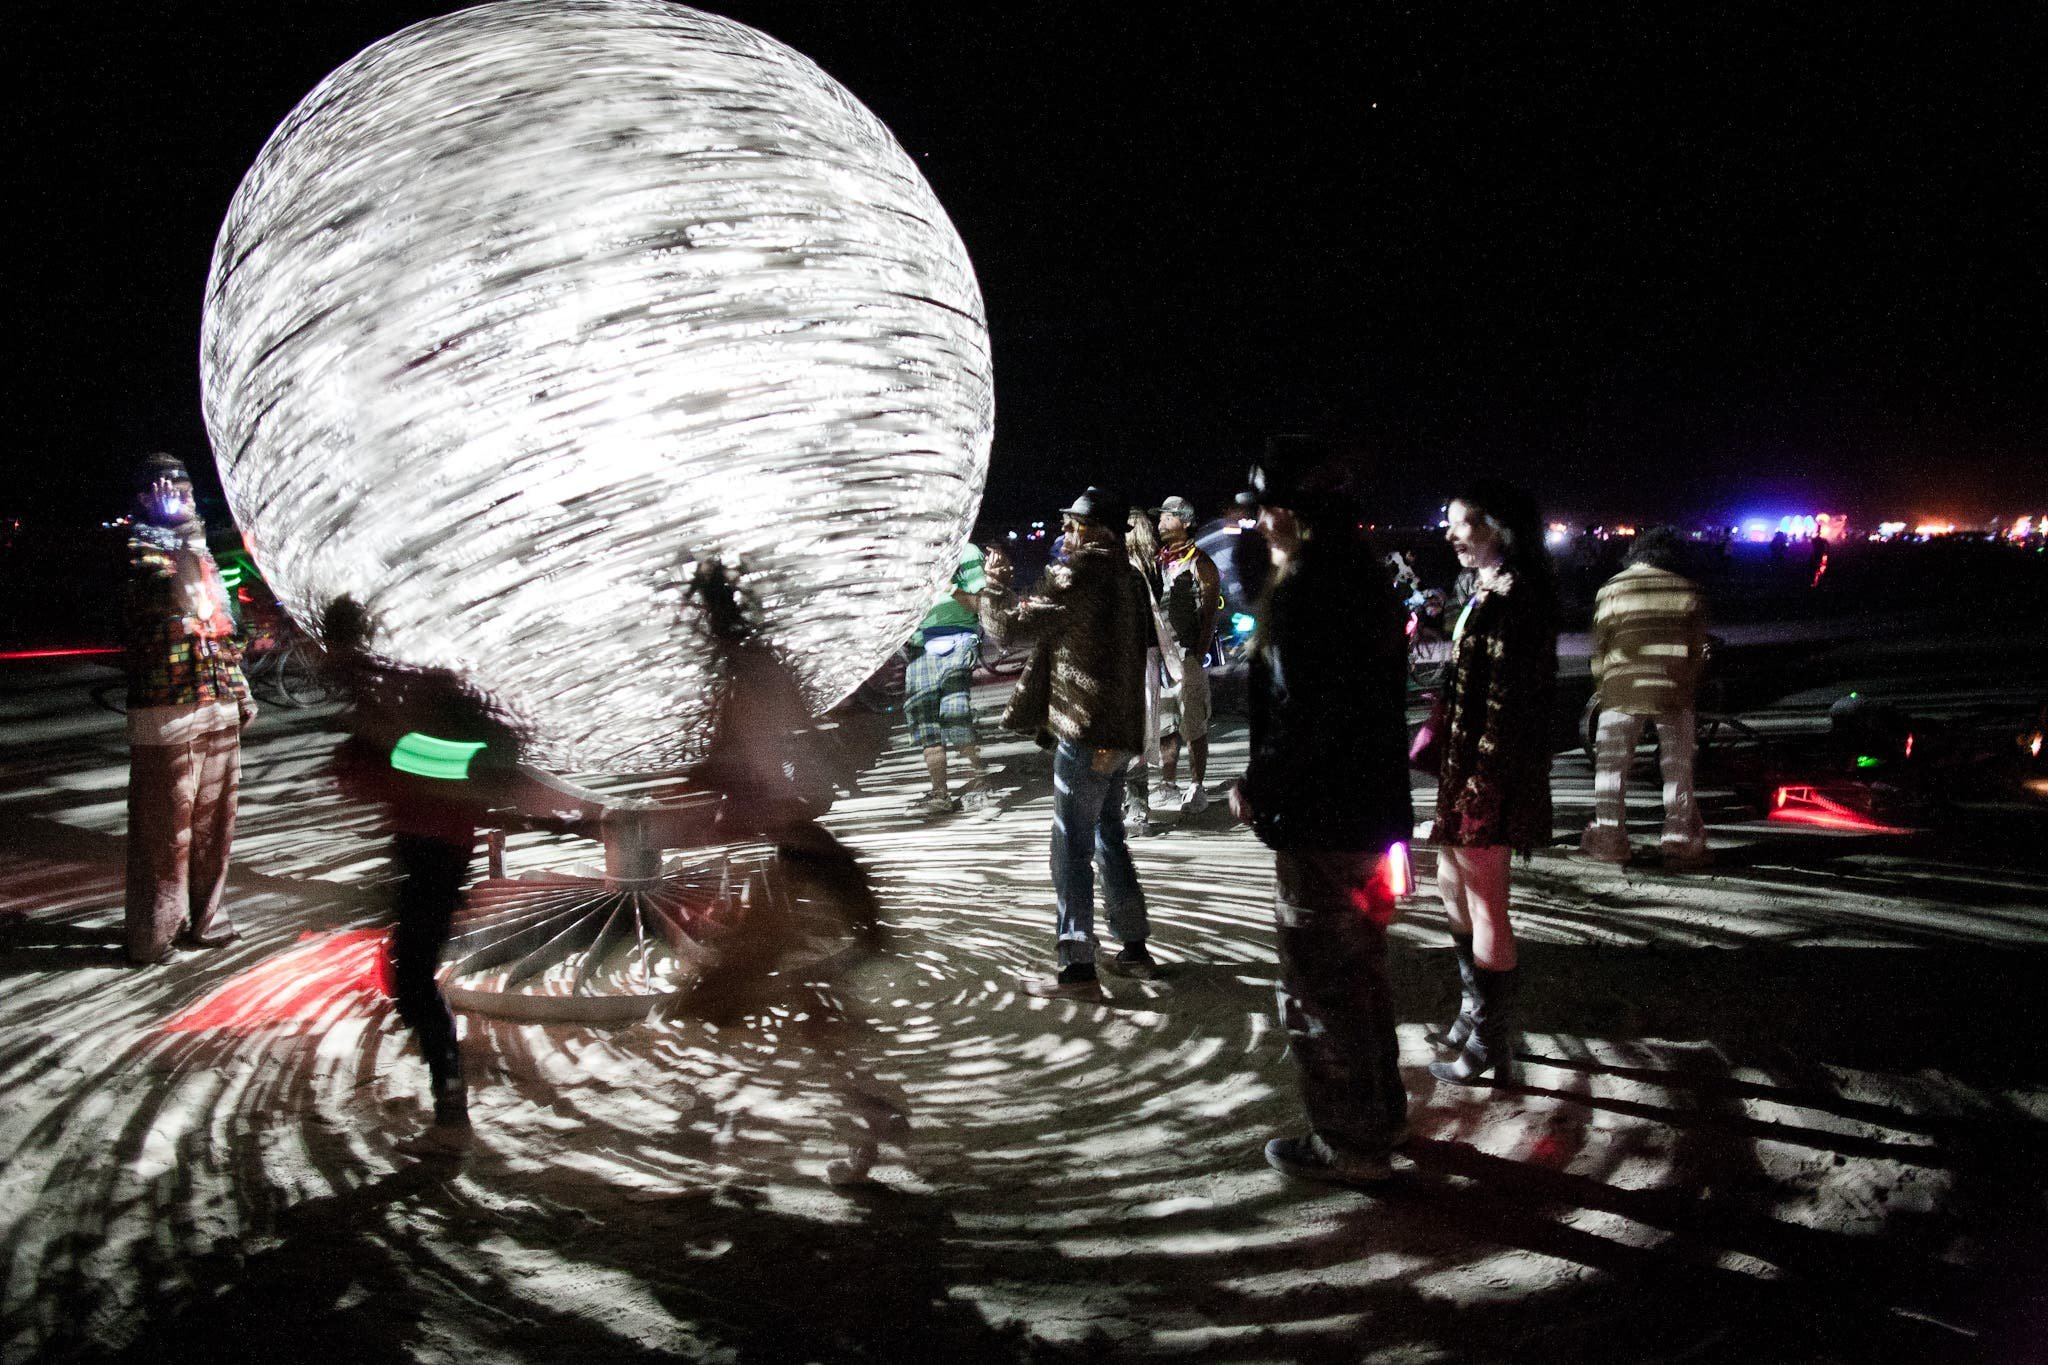 How to Prepare to Photograph Burning Man-From a Veteran Attending for Years - The Phoblographer